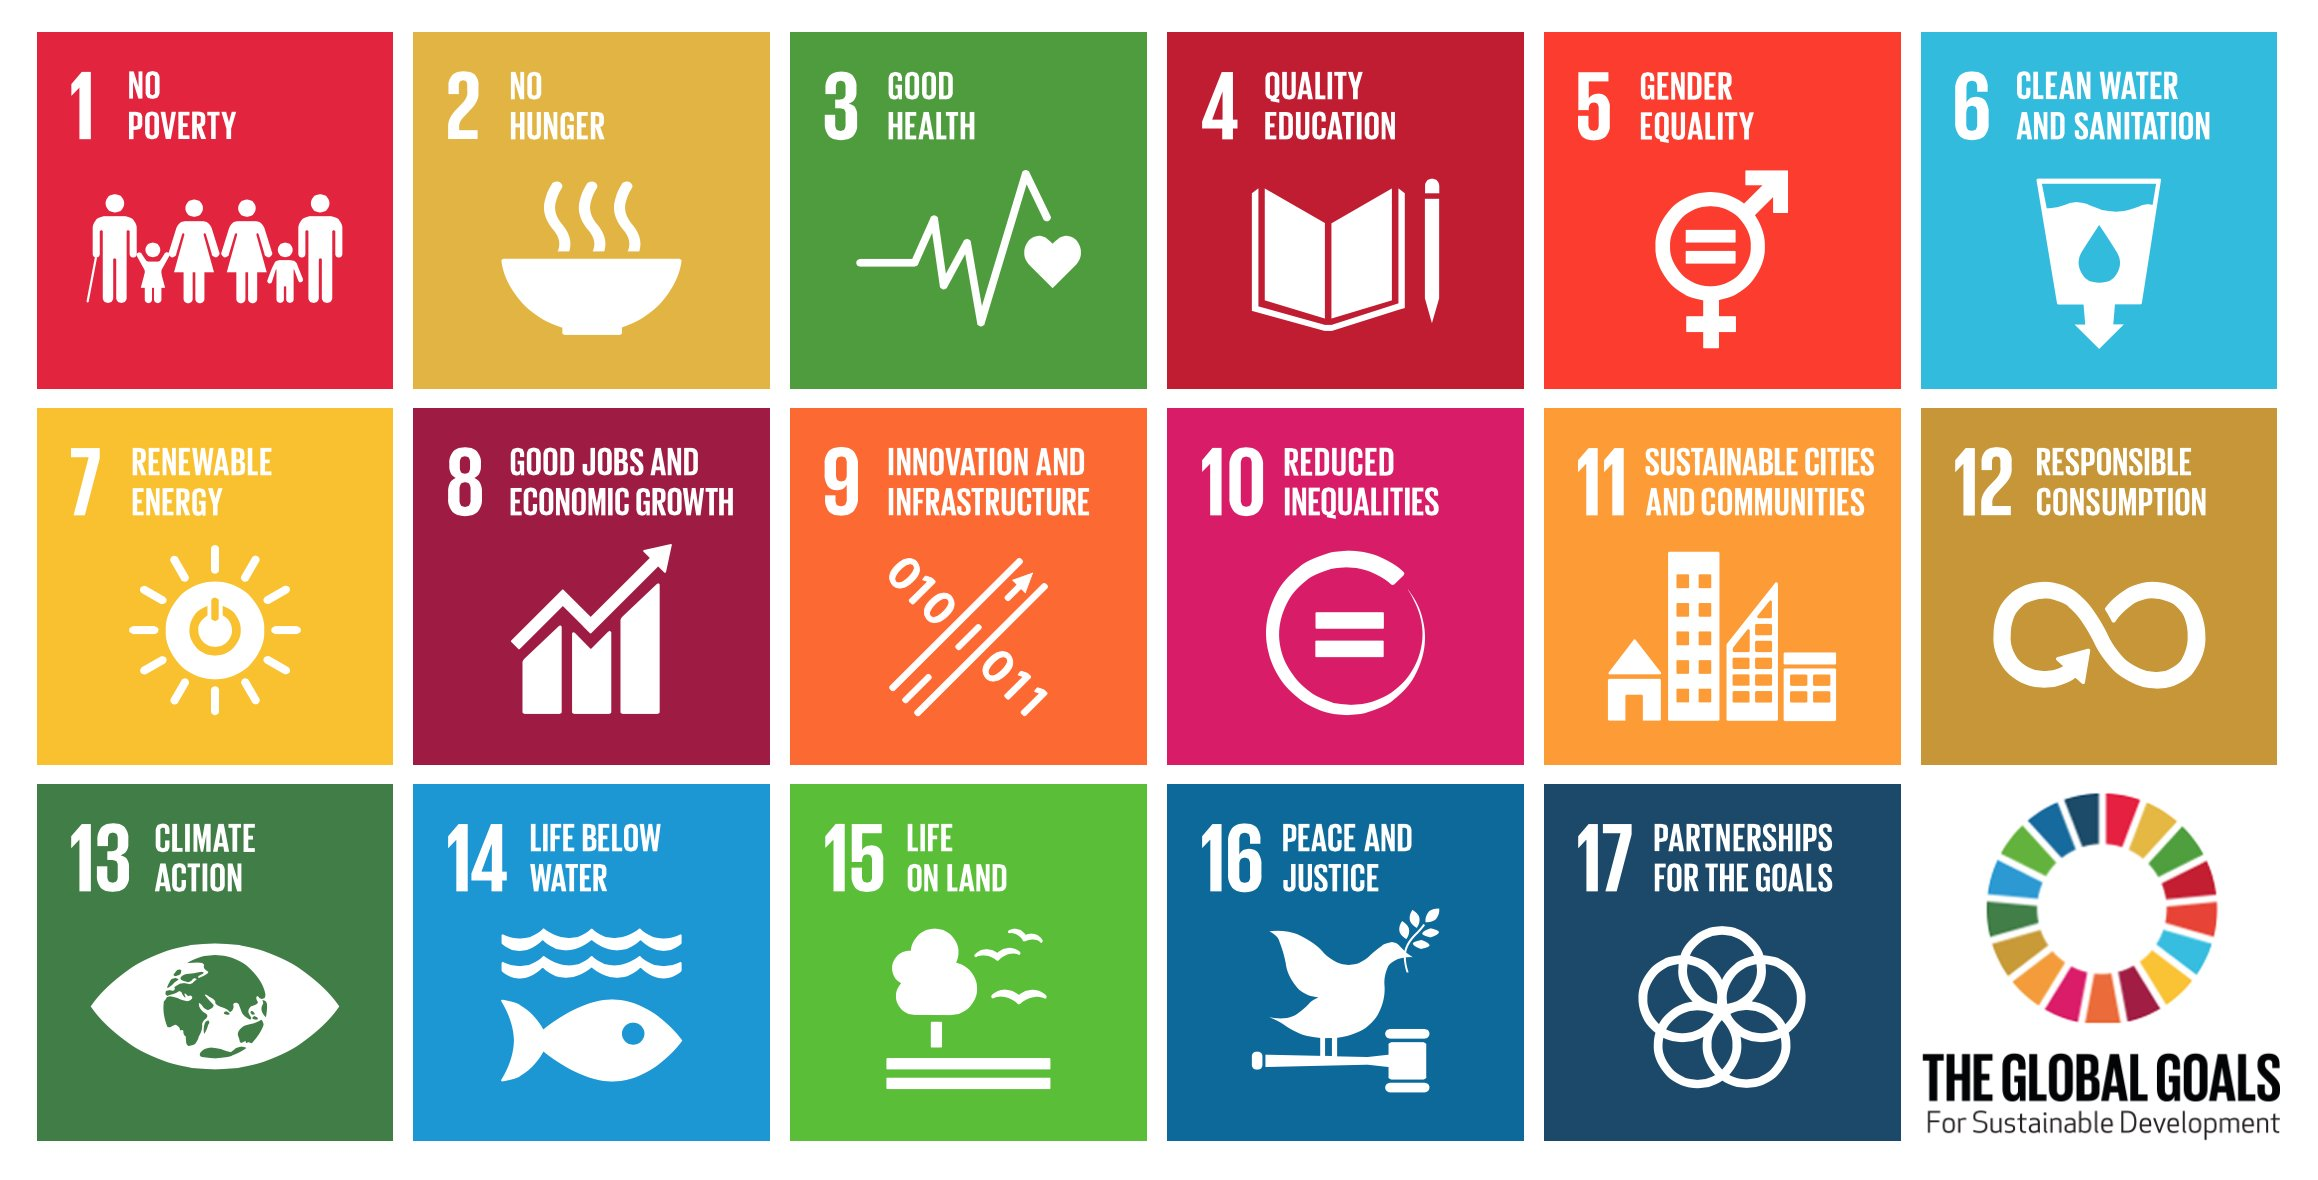 global-goals-full-icons.png__2318x1180_q85_crop_subsampling-2_upscale.jpg